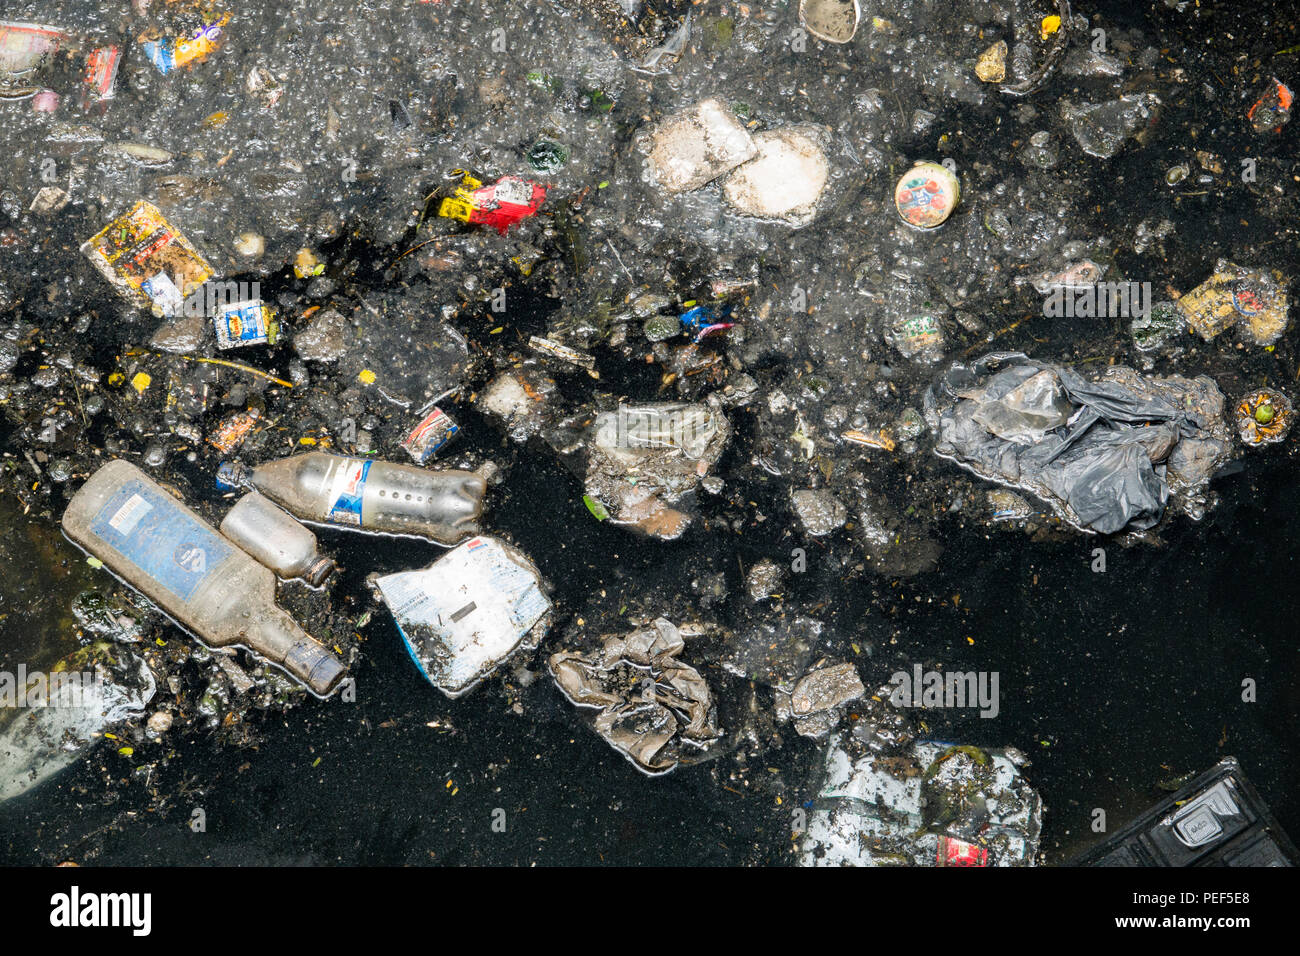 Toxic pollution floating in river, Mumbai, India - Stock Image